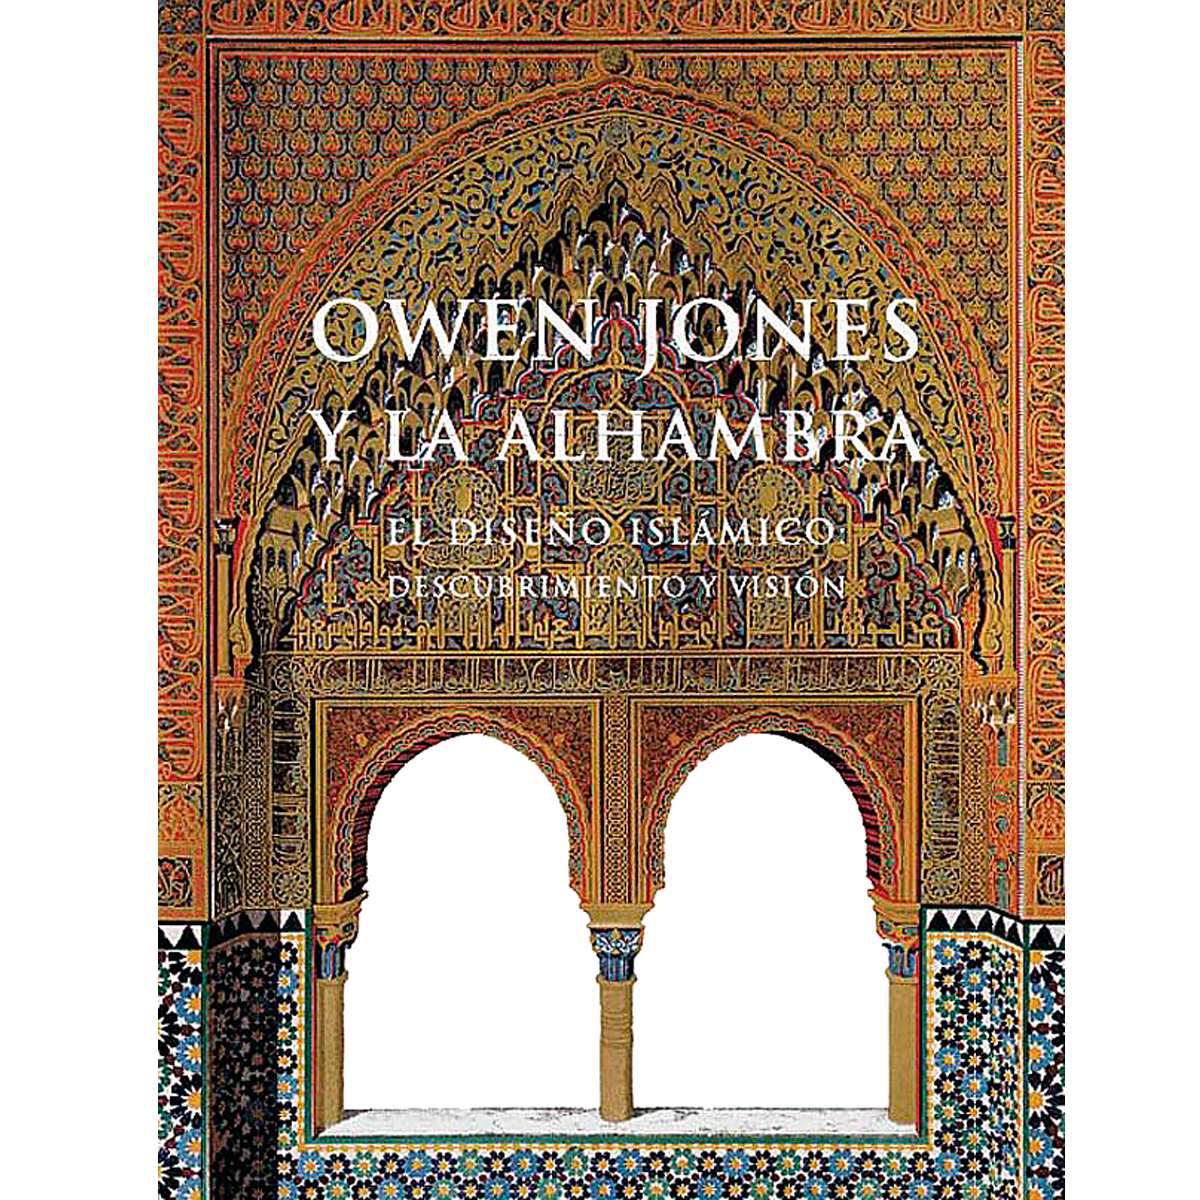 Owen Jones y la Alhambra